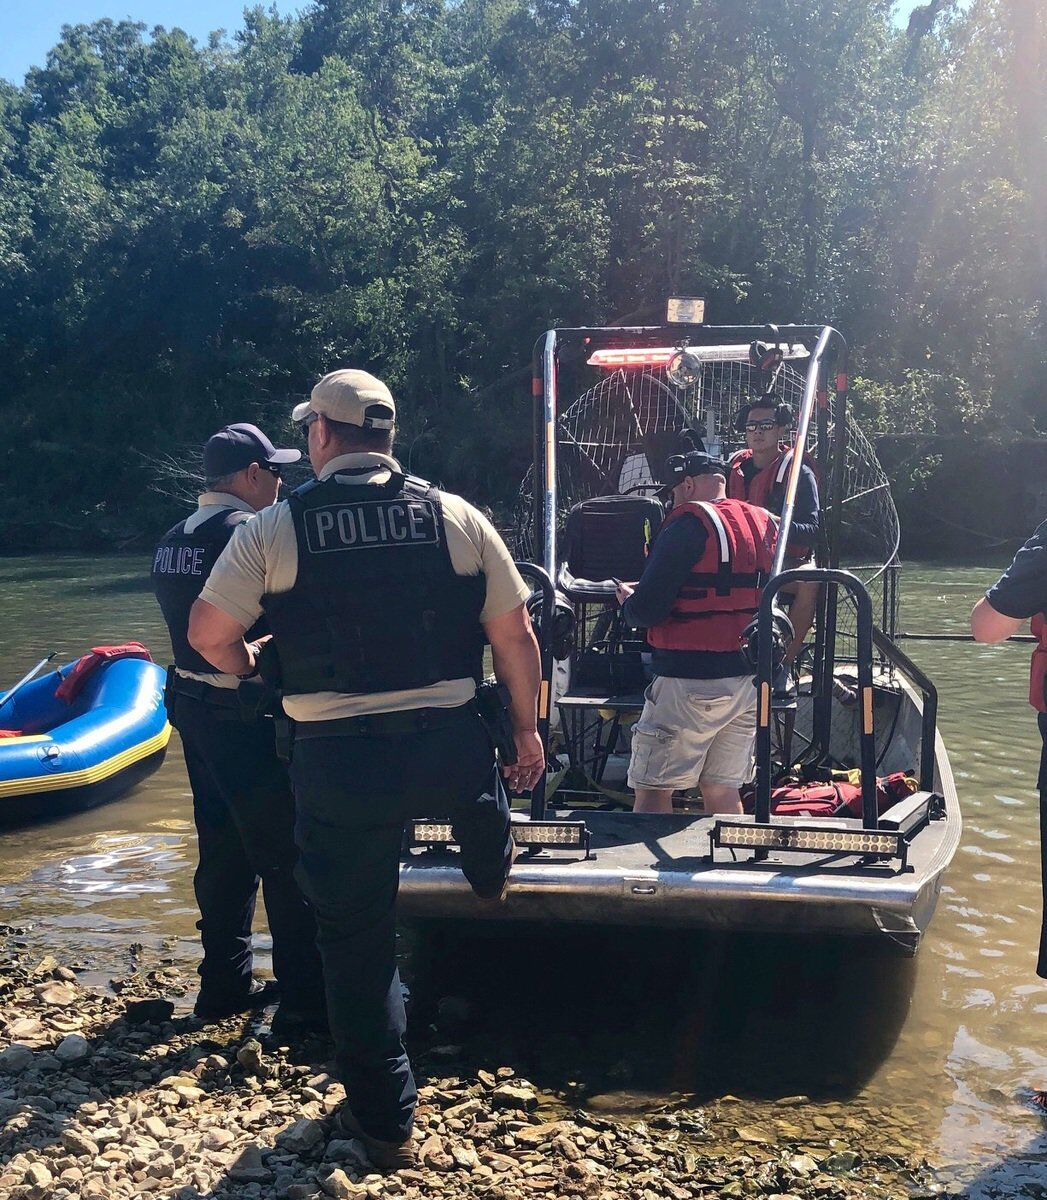 FLOATING THEIR BOAT: Illinois River VFD uses airboat to save lives, stop trouble